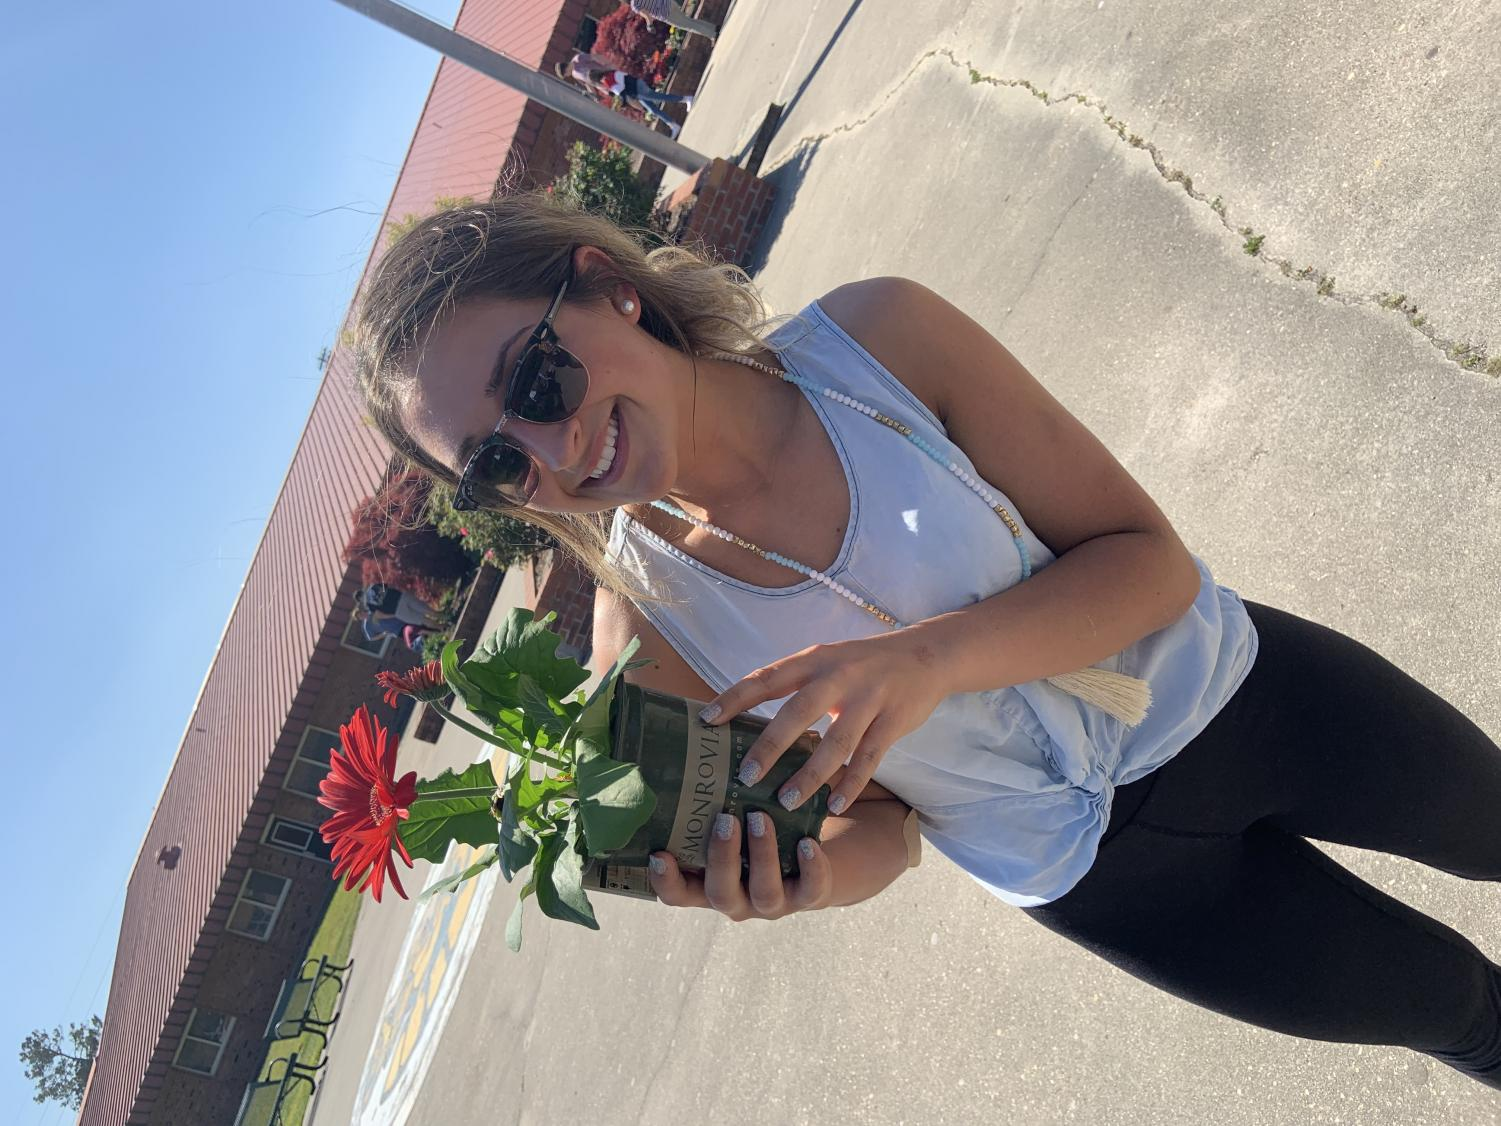 Senior Chloe Lach represents Key Club by helping plant flowers.